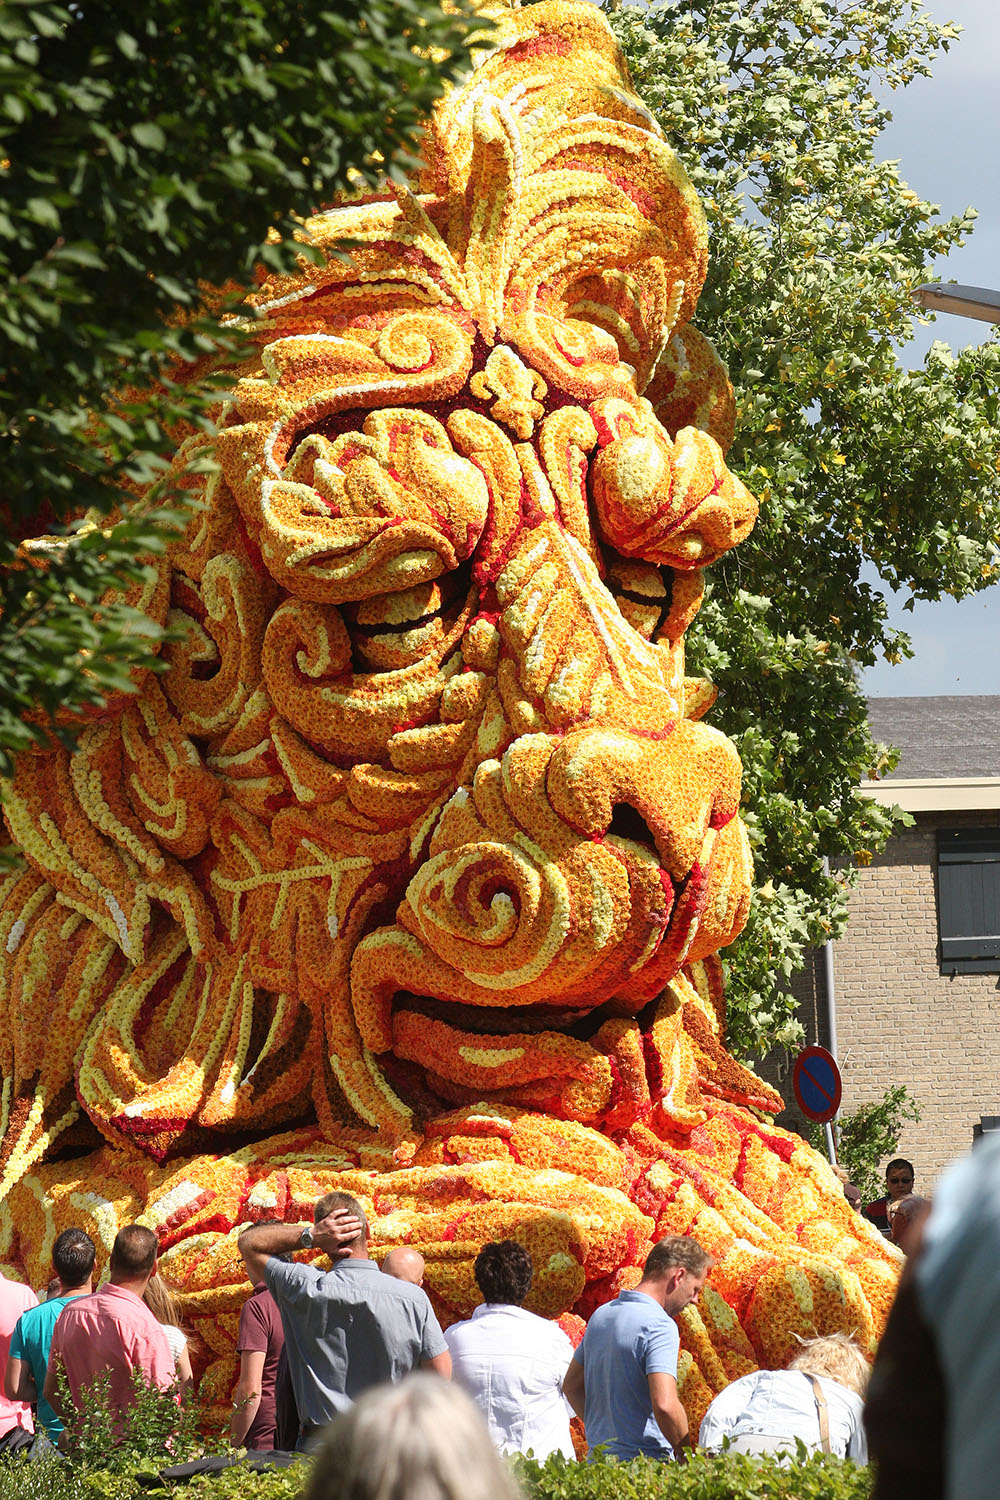 The Annual 'Corso Zundert' Flower Parade Features Radically Designed Floats Adorned with Dahlias